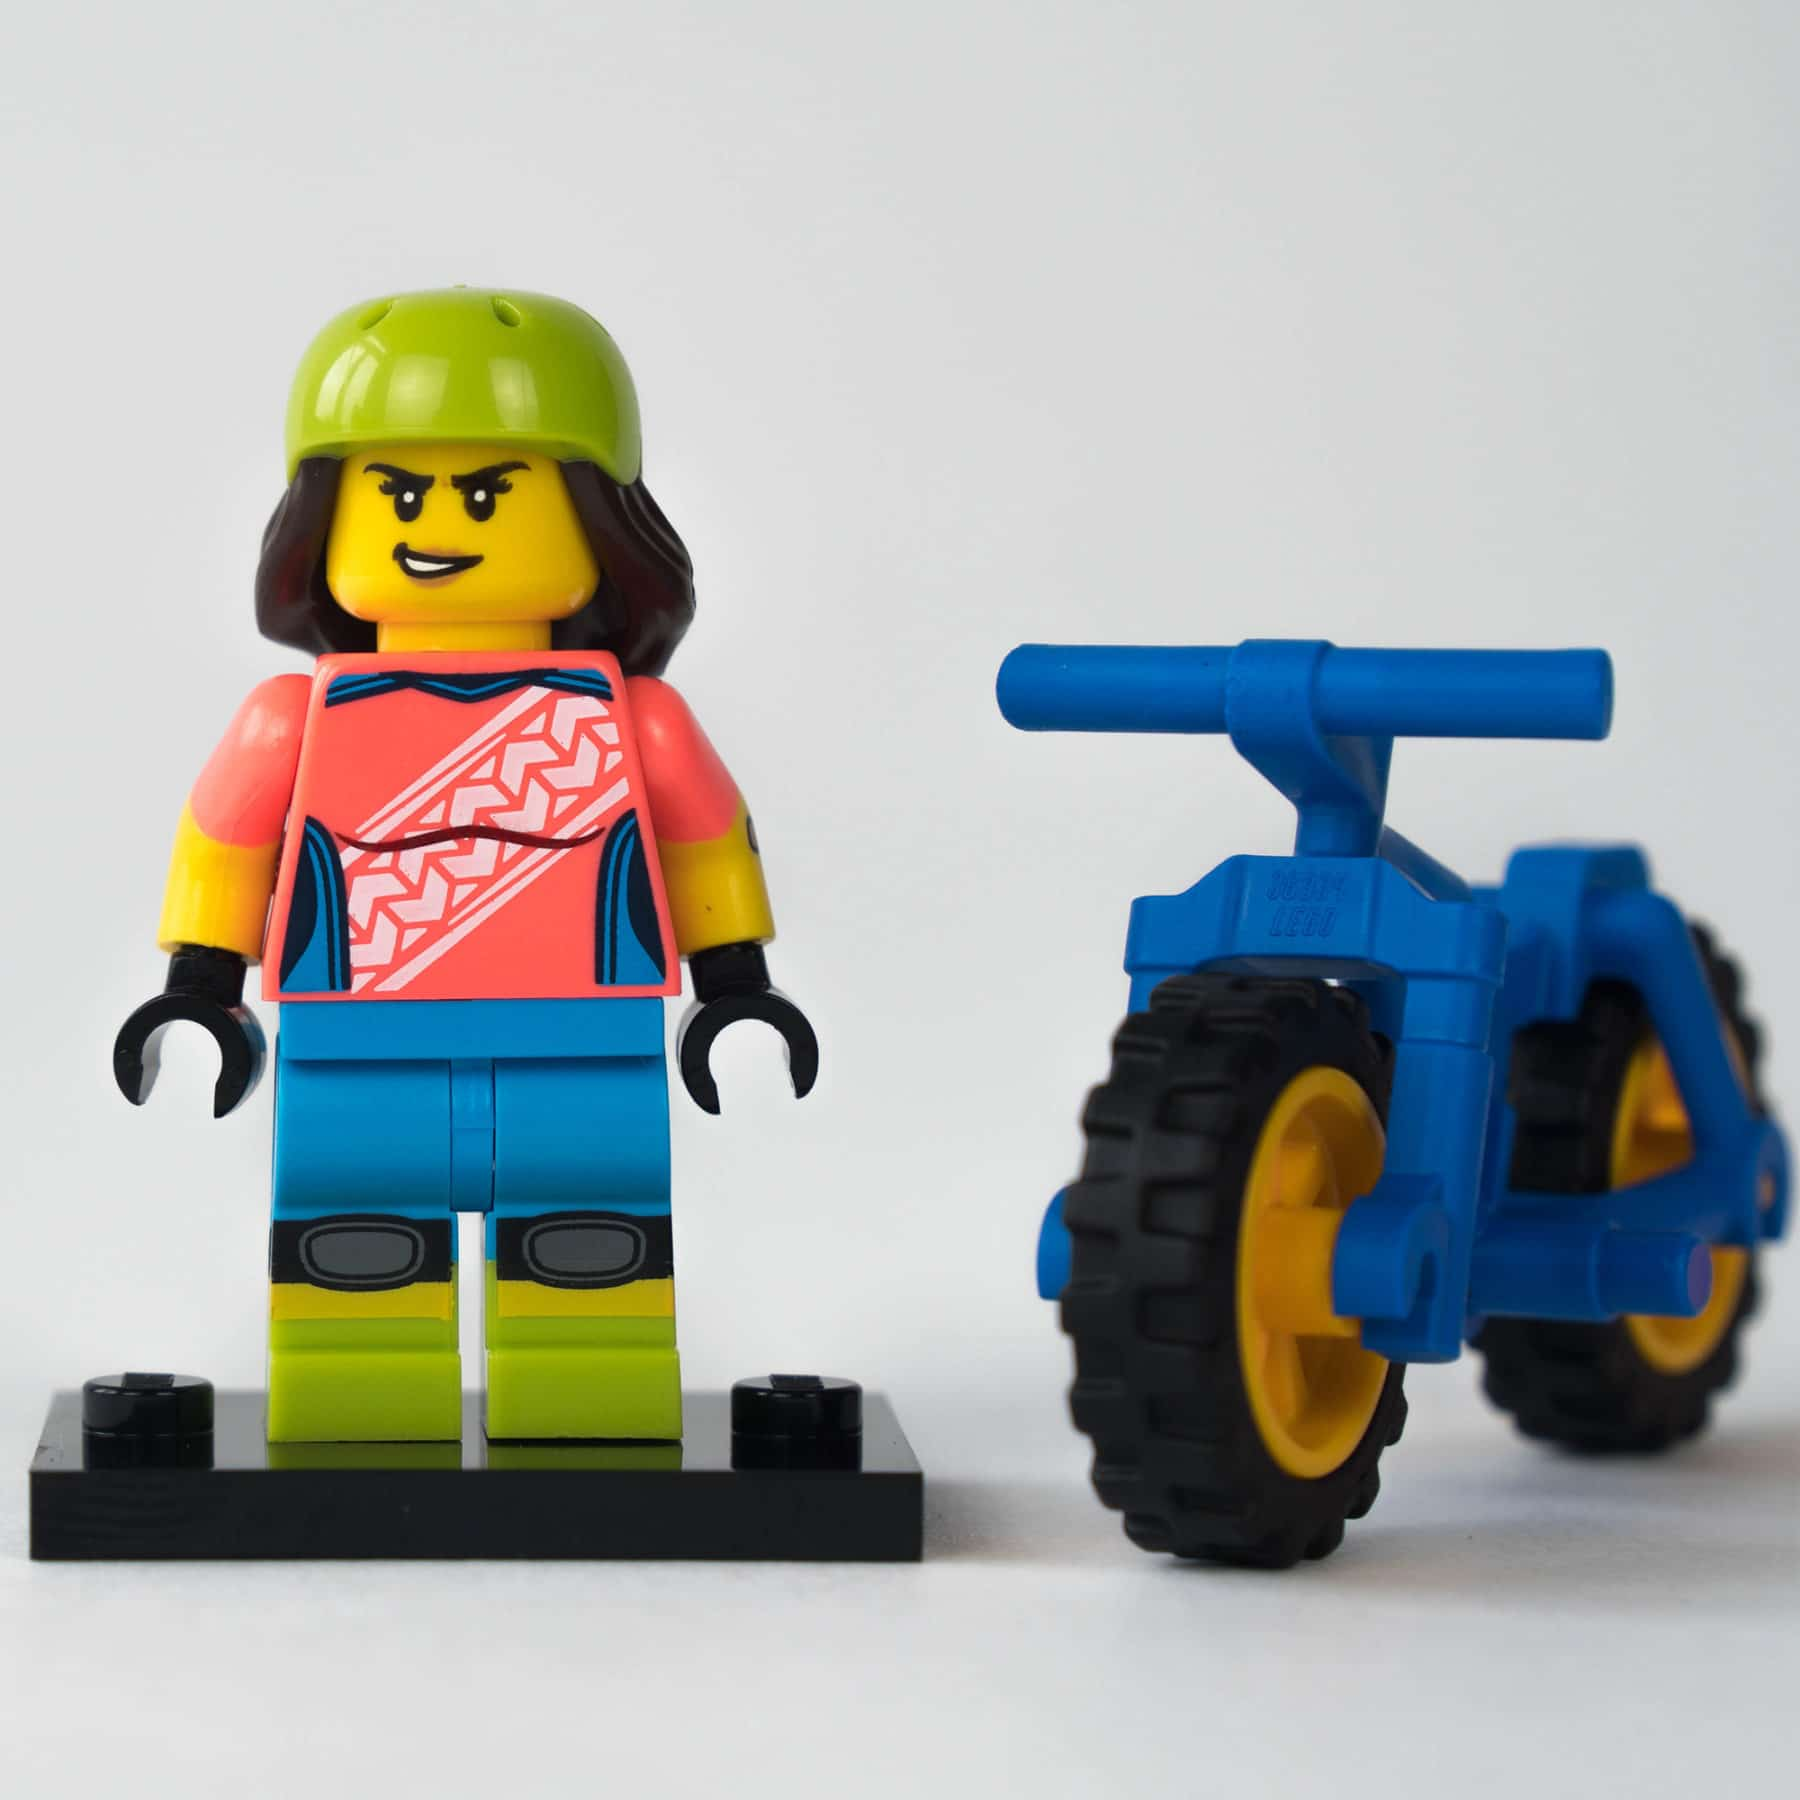 LEGO 71025 Minifigur: Mountainbikerin